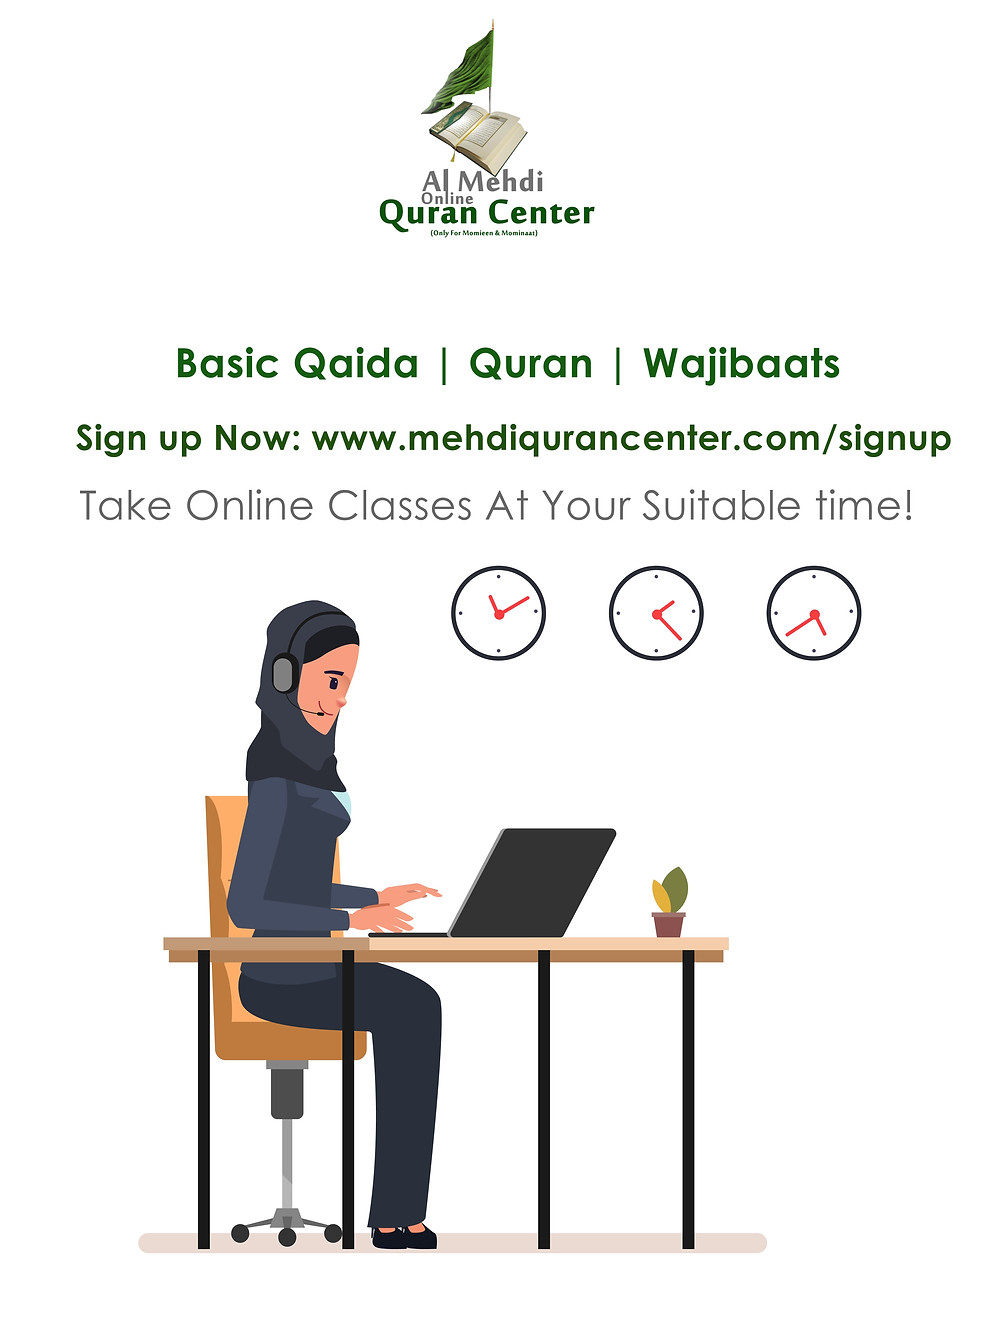 Al Mehdi Online Quran Center ad Online Quran Teaching Center for Shia Muslims